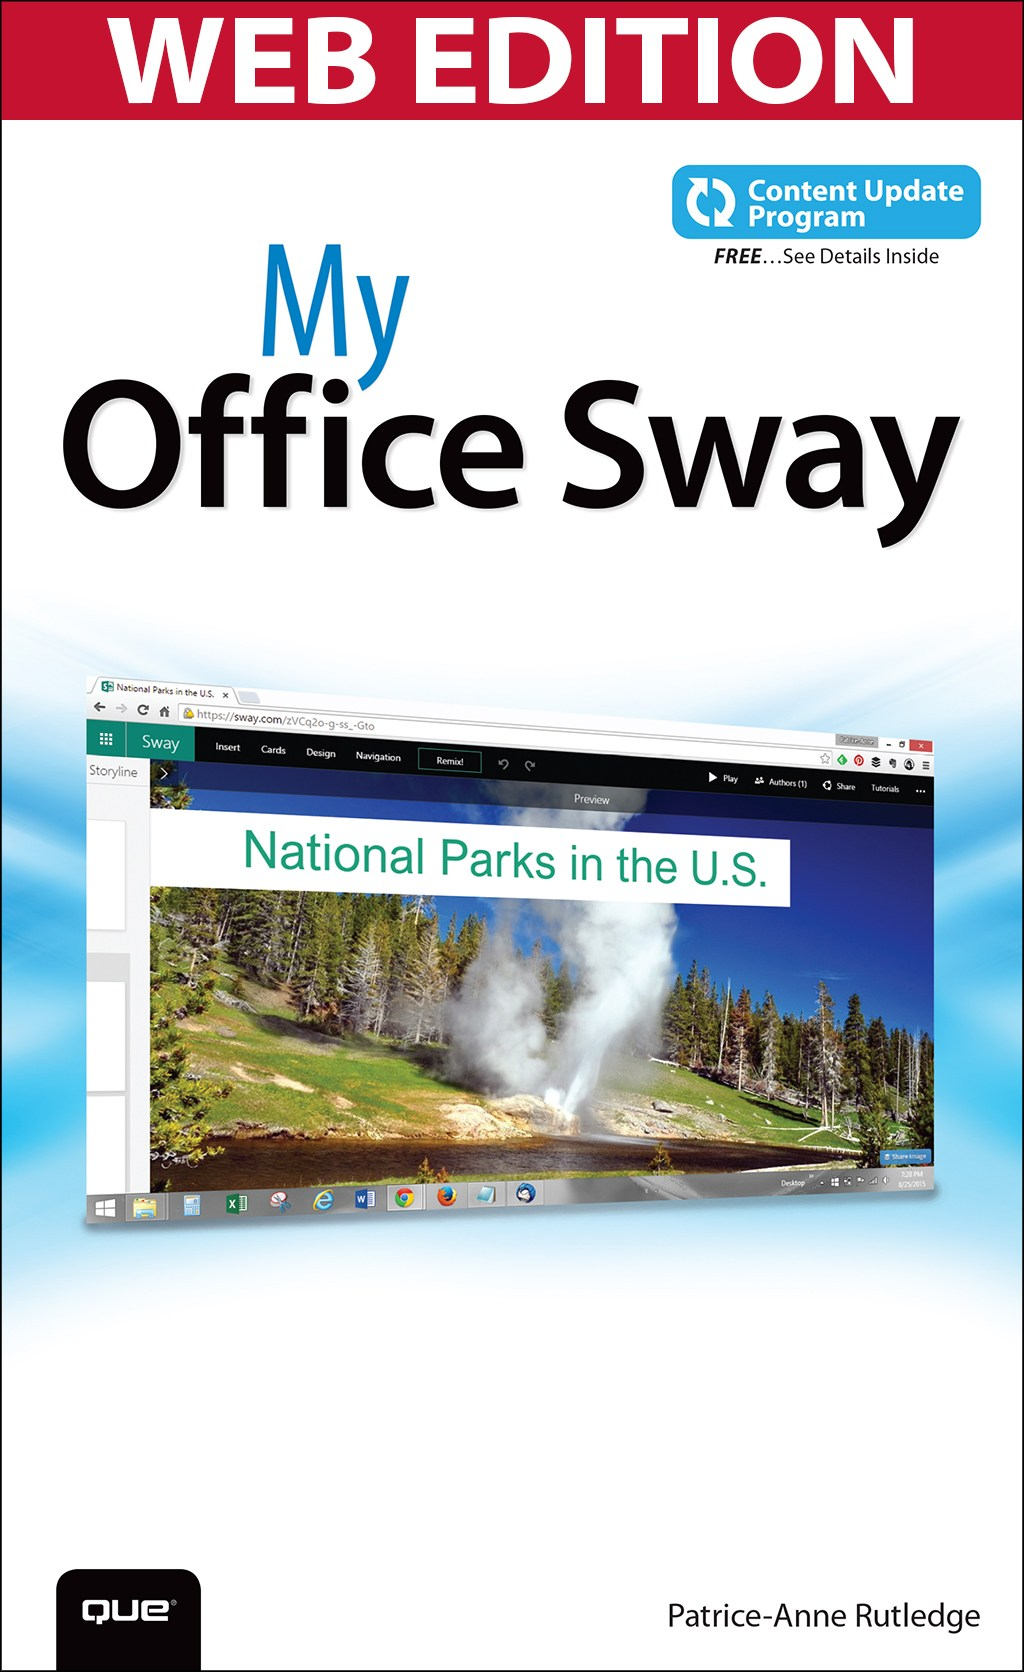 My Office Sway (Web Edition with Content Update Program)